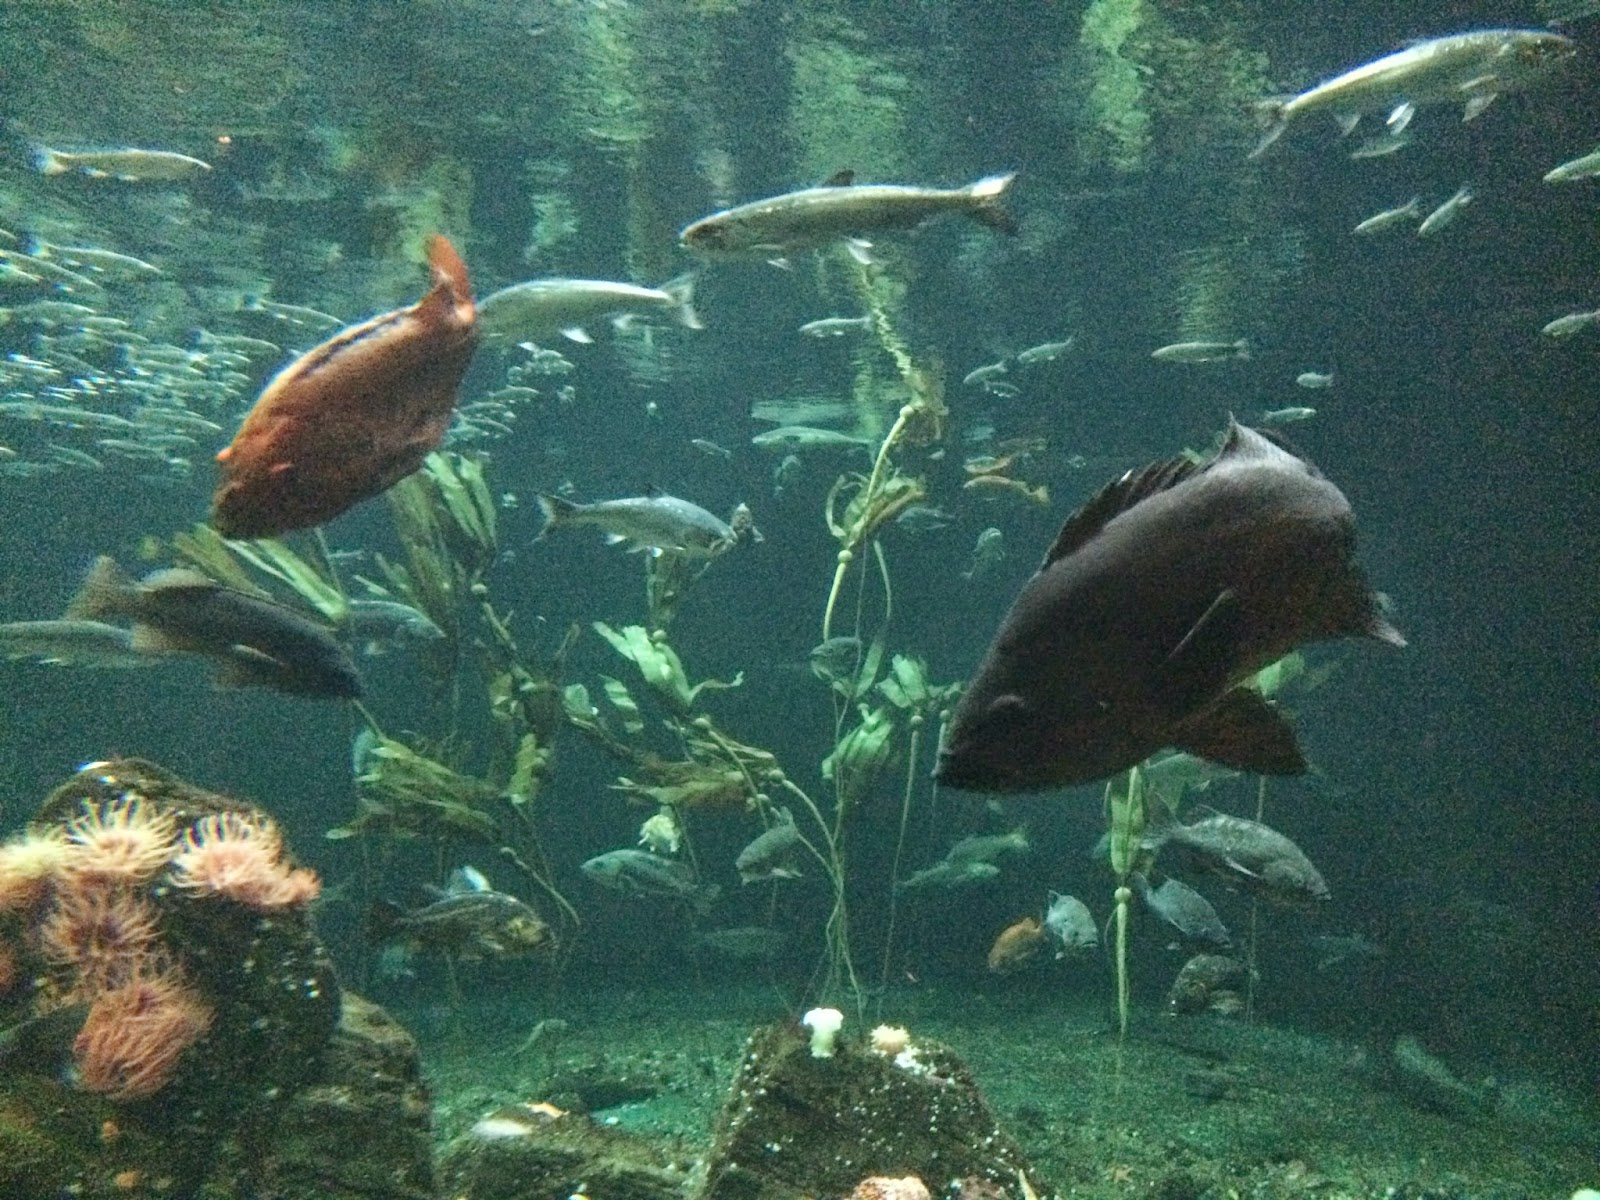 Freshwater aquarium fish vancouver - He S A Celebrity Because Of This Article Http Globalnews Ca News 1766096 One Eyed Vancouver Fish Gets Fake Eye So Other Fish Wont Bully Him